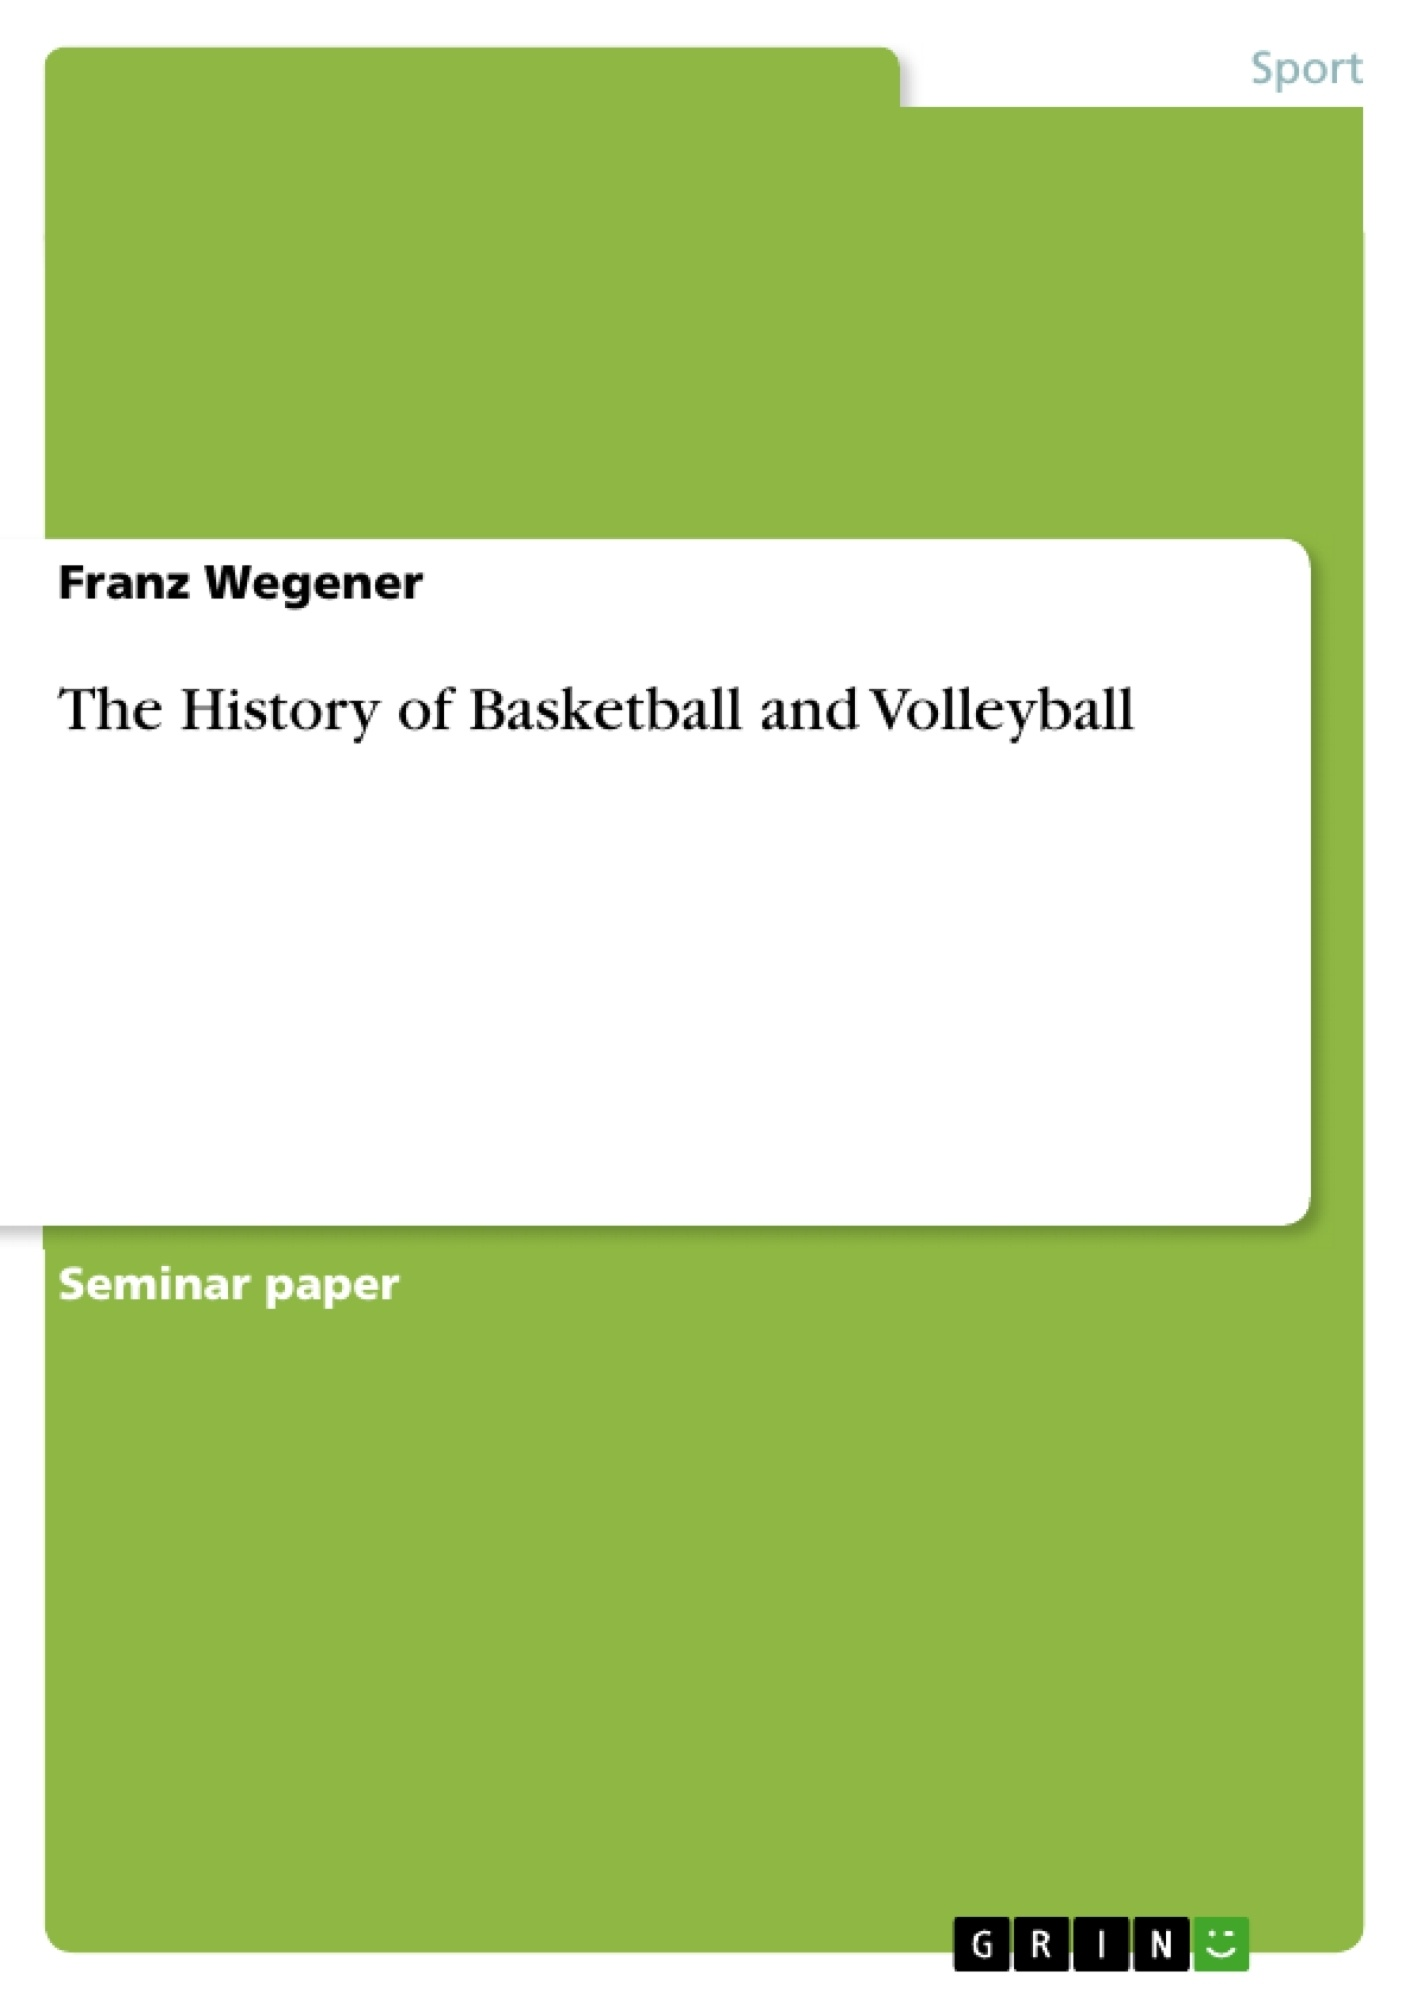 Title: The History of Basketball and Volleyball